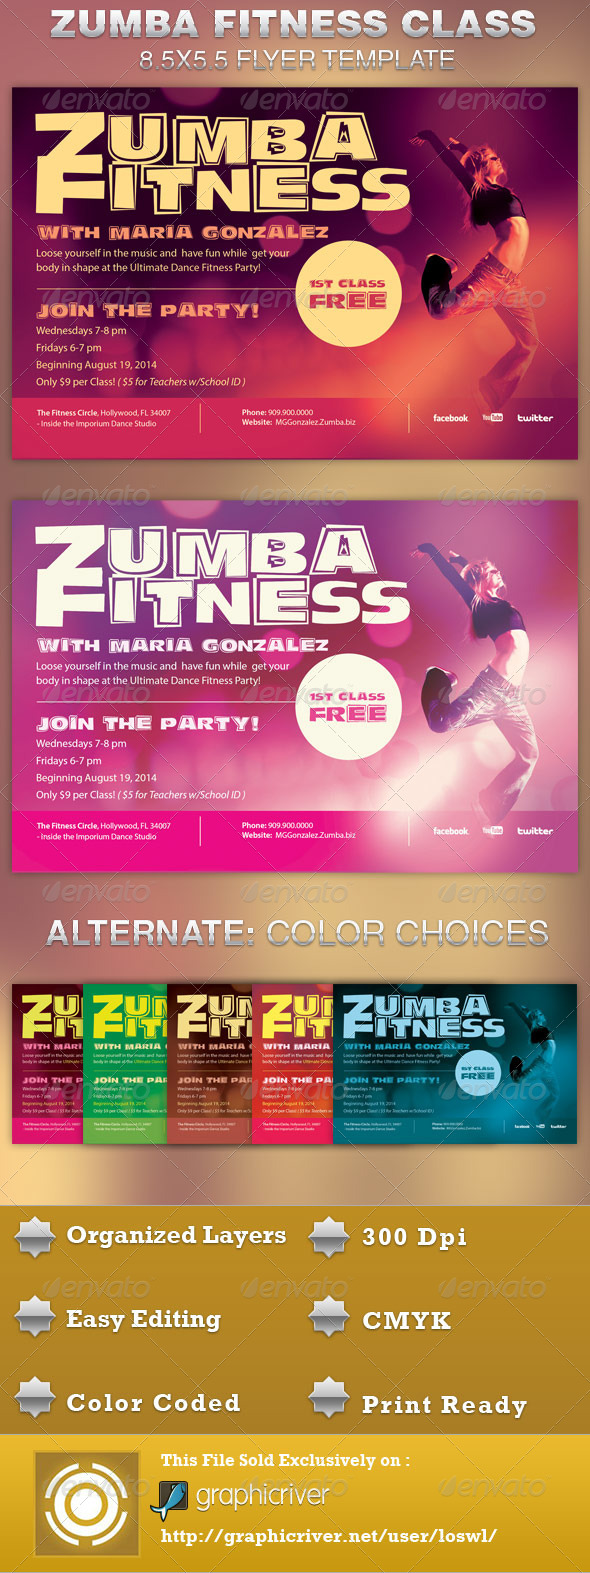 GraphicRiver Zumba Fitness Class Flyer Template 5417263